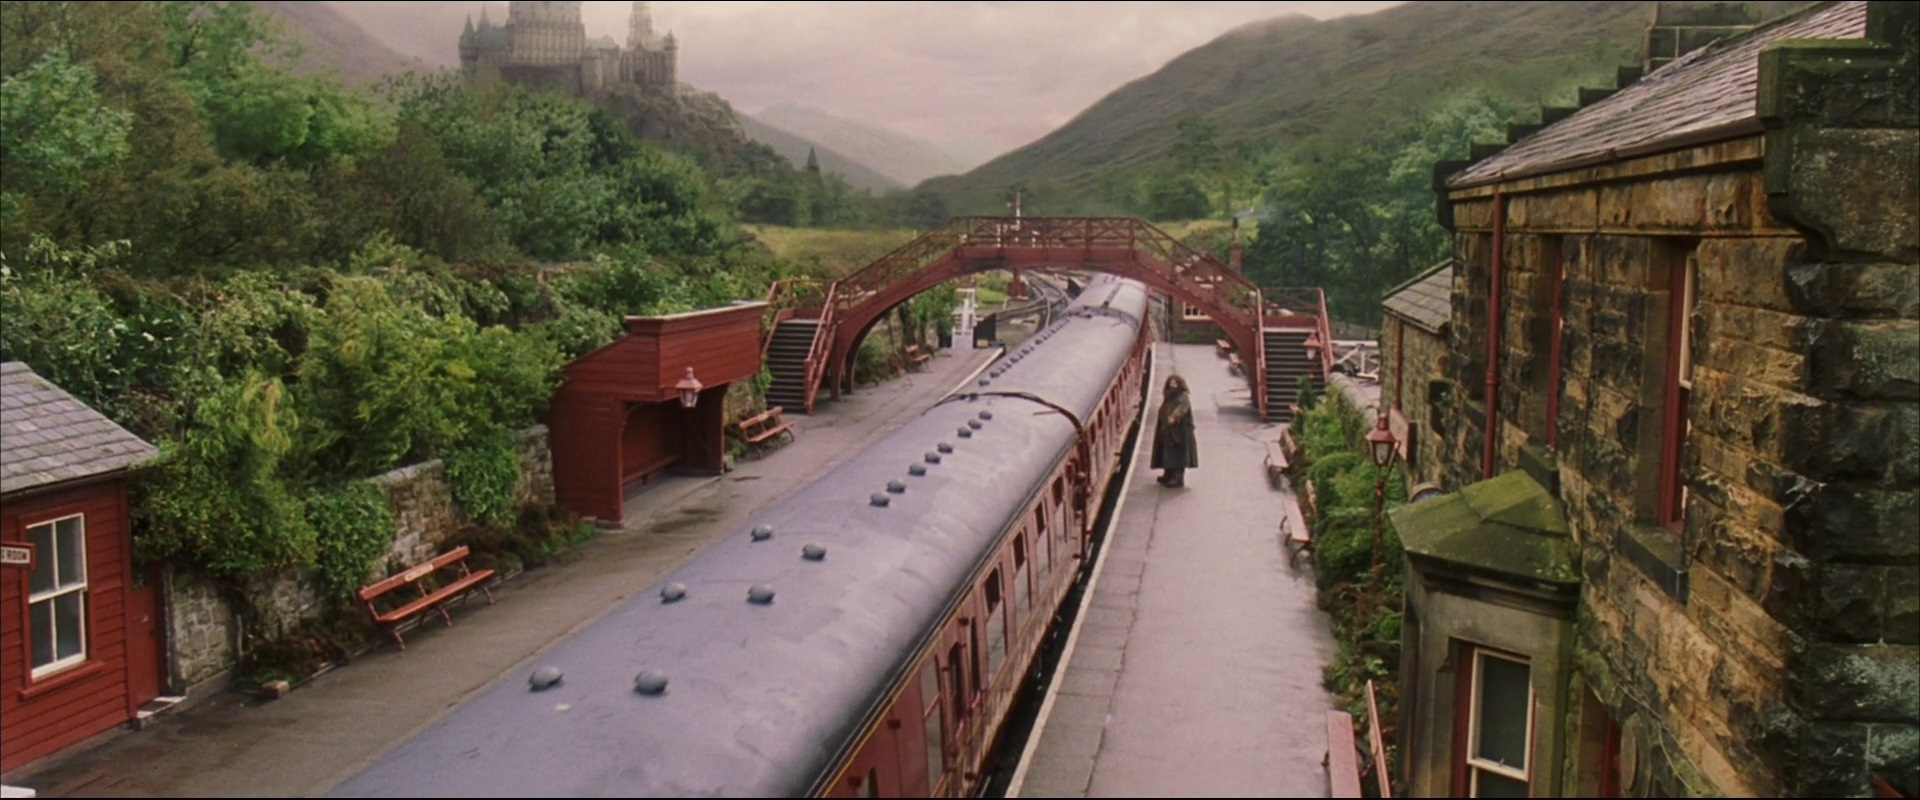 File:Hogsmeade Station.jpg